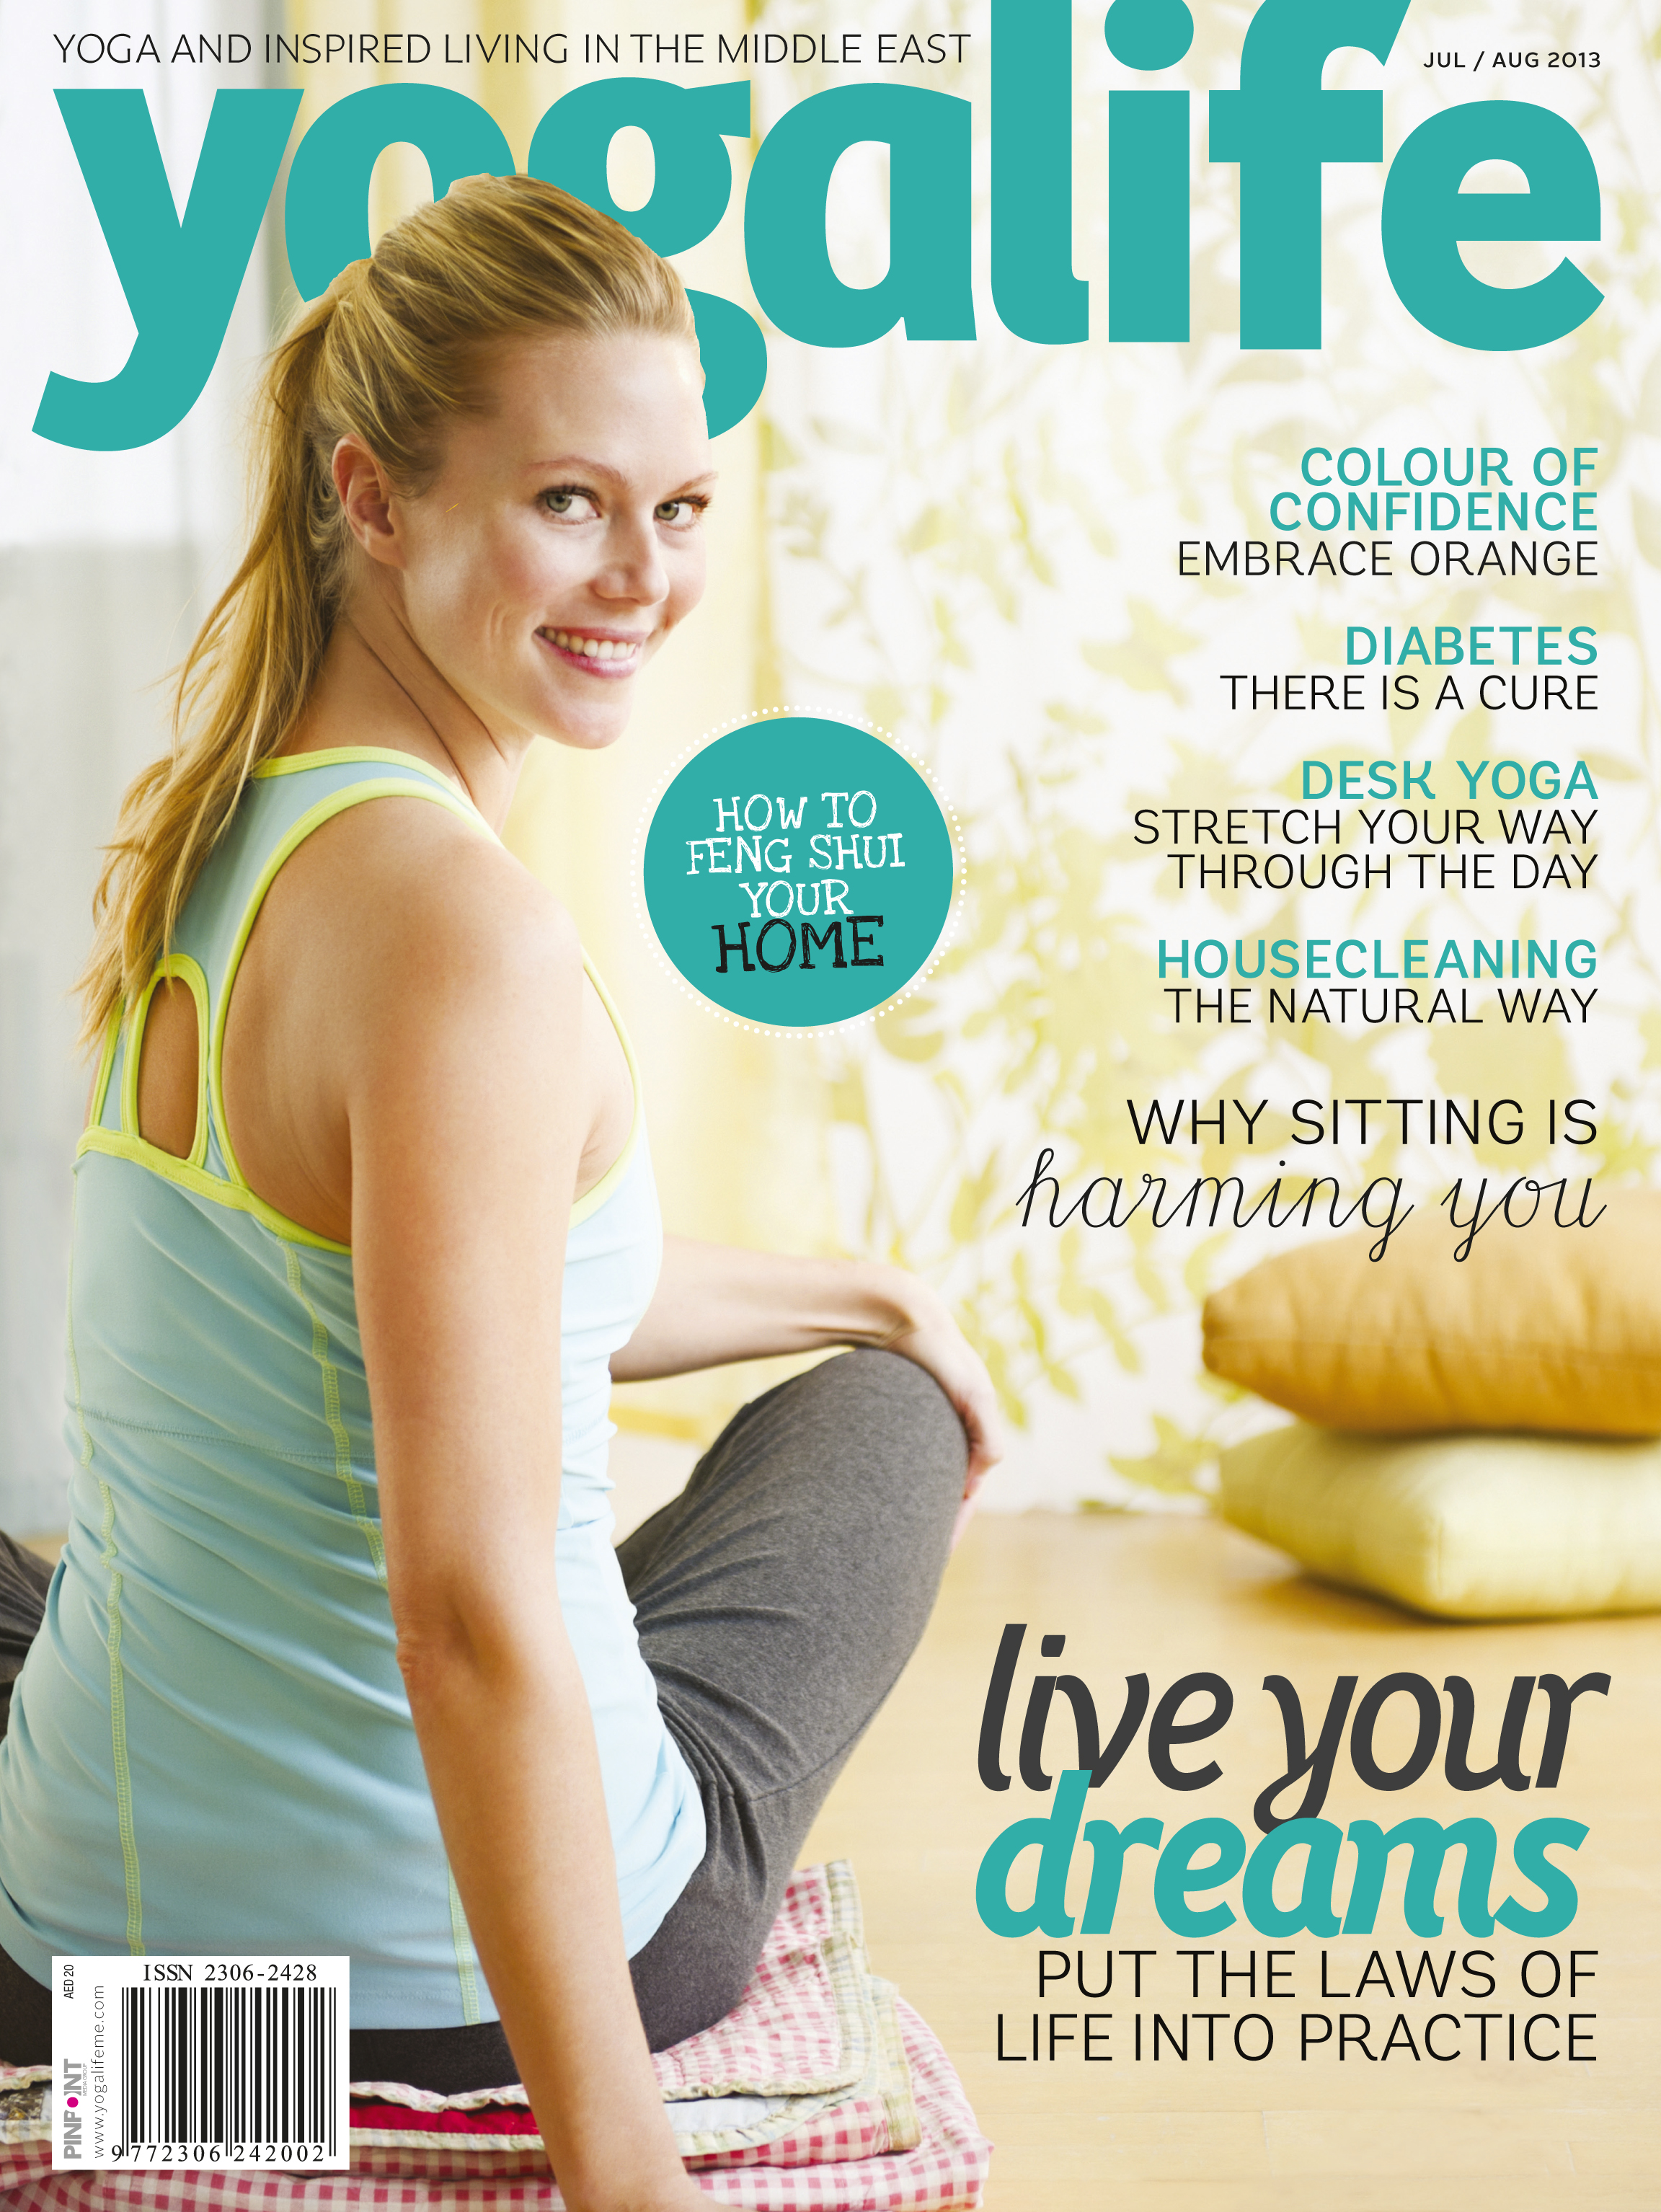 Yogalife Magazine: https://www.facebook.com/pages/YogaLife-Middle-East/107025599457985